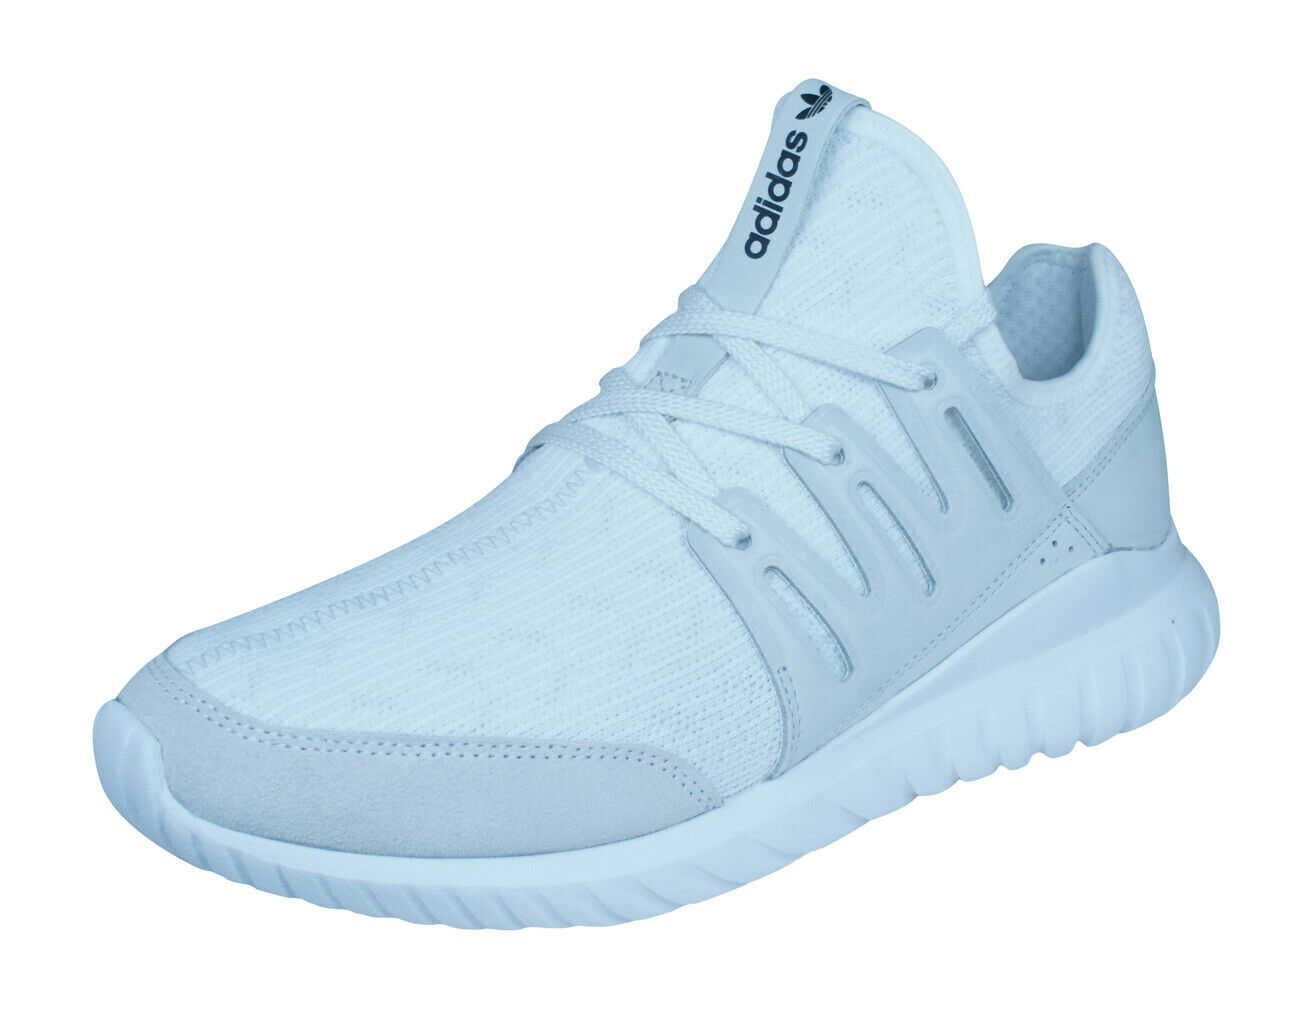 Mens adidas Originals Sneakers Tubular Radial PK Primeknit Sports shoes - White